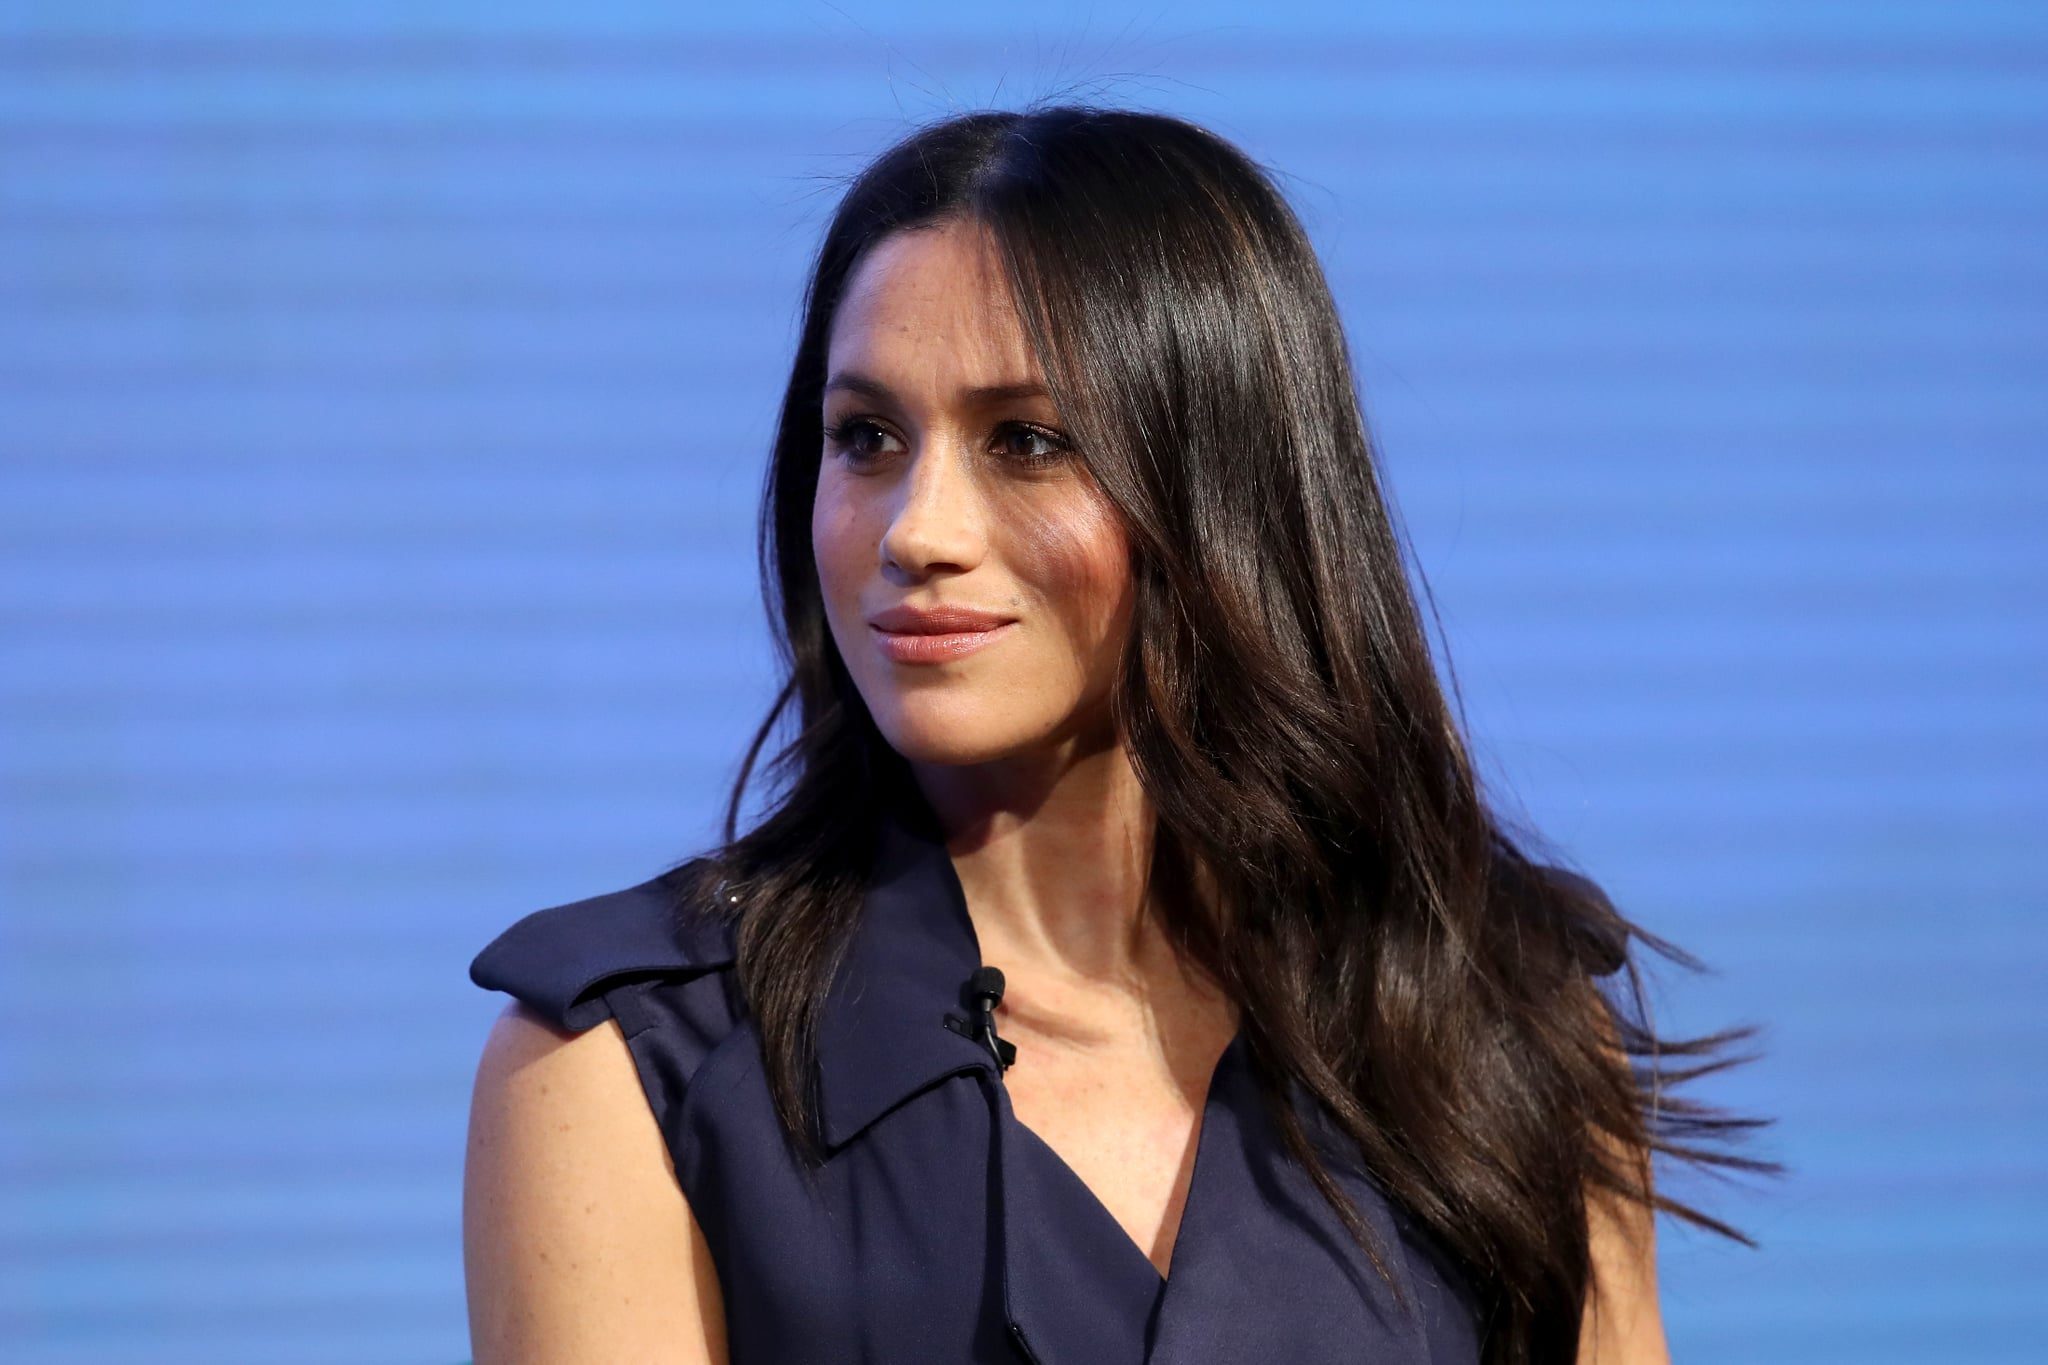 LONDON, ENGLAND - FEBRUARY 28: Meghan Markle attends the first annual Royal Foundation Forum held at Aviva on February 28, 2018 in London, England. Under the theme 'Making a Difference Together', the event will showcase the programmes run or initiated by The Royal Foundation.  (Photo by Chris Jackson - WPA Pool/Getty Images)